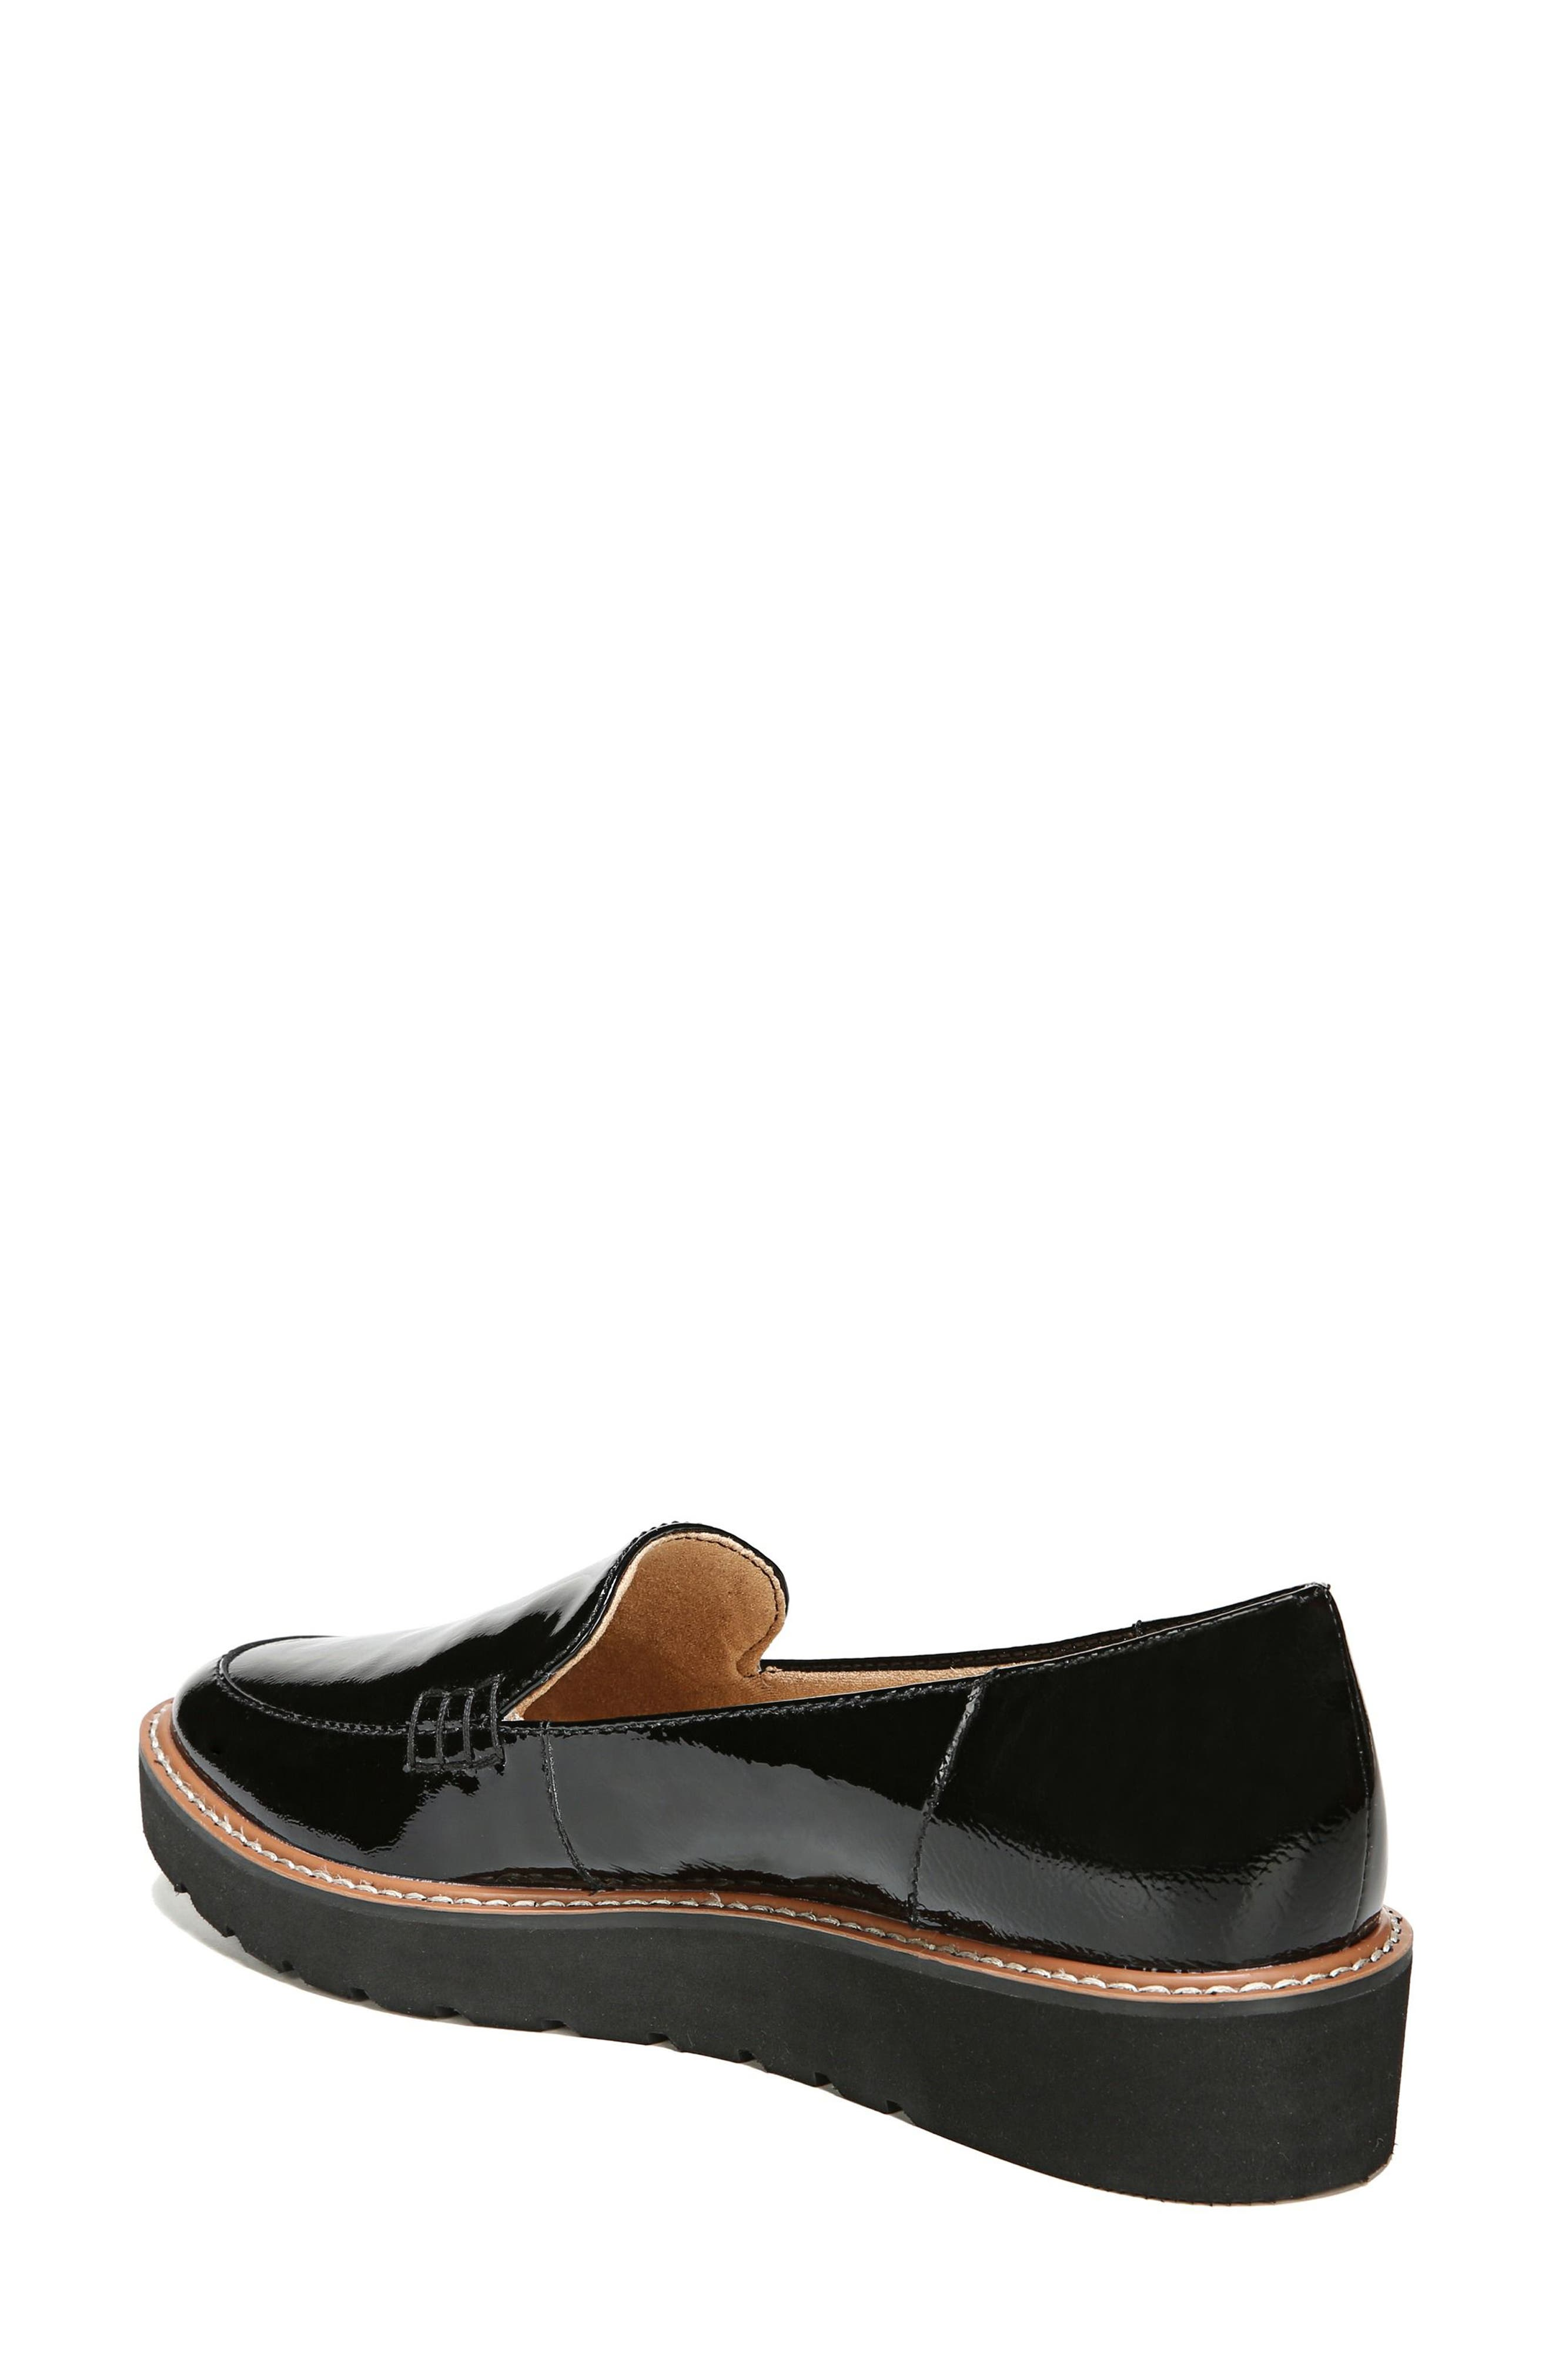 Andie Loafer,                             Alternate thumbnail 7, color,                             BLACK PATENT